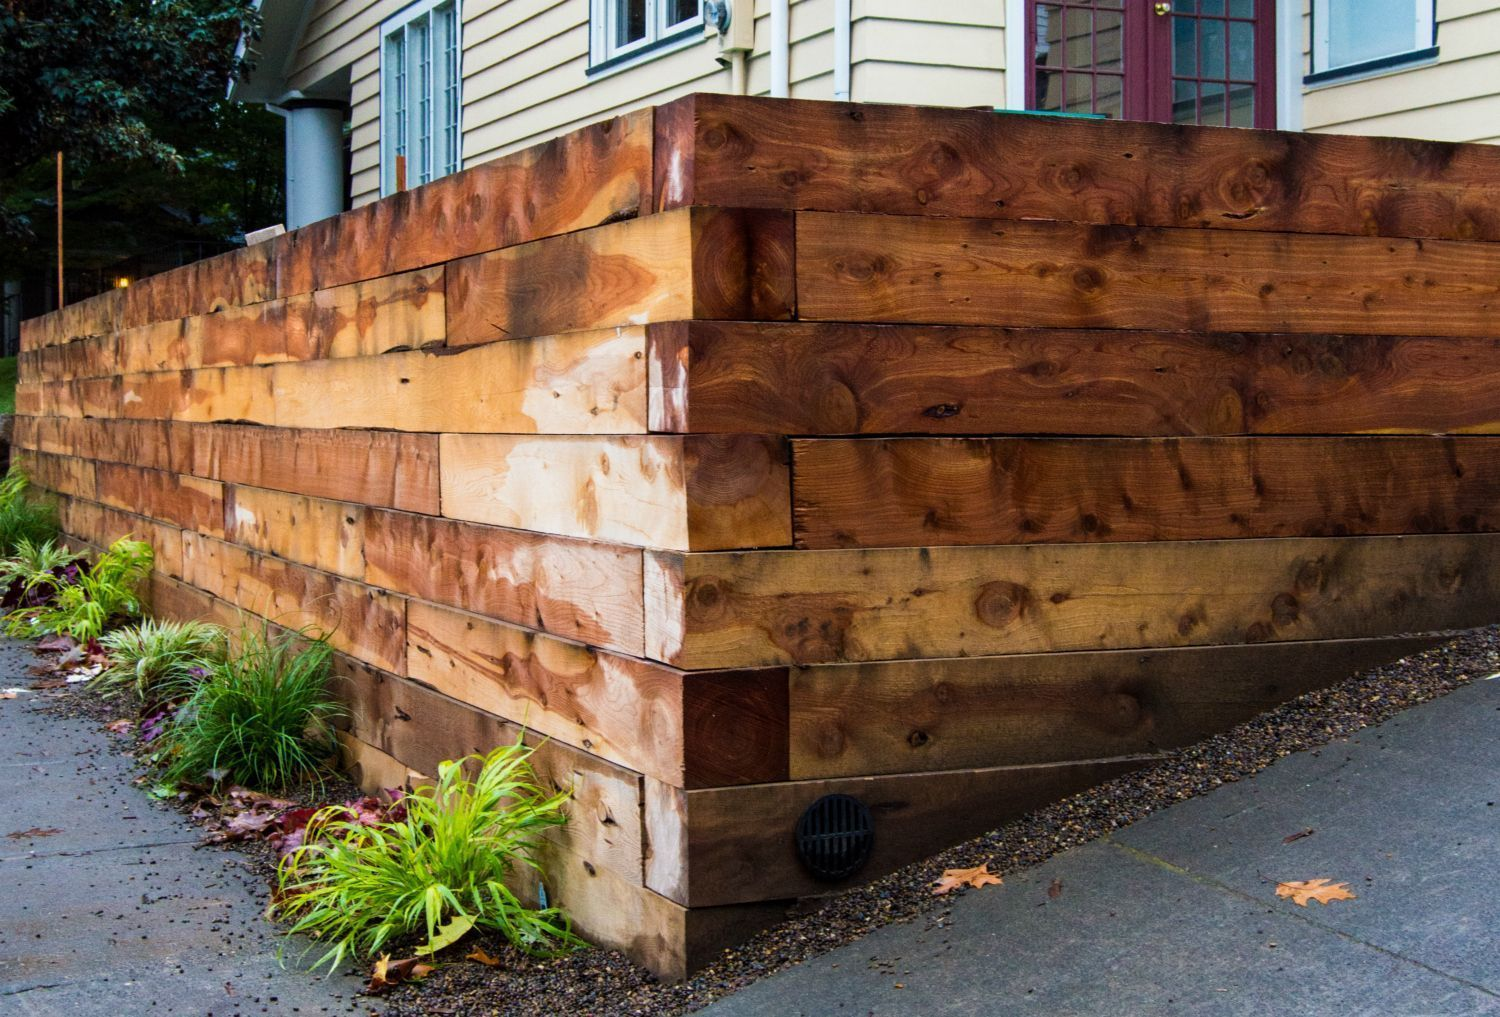 35 Inspiring Retaining Wall Ideas Uses That Will Blow Your Mind Homelovers Wooden Retaining Wall Landscaping Retaining Walls Backyard Retaining Walls